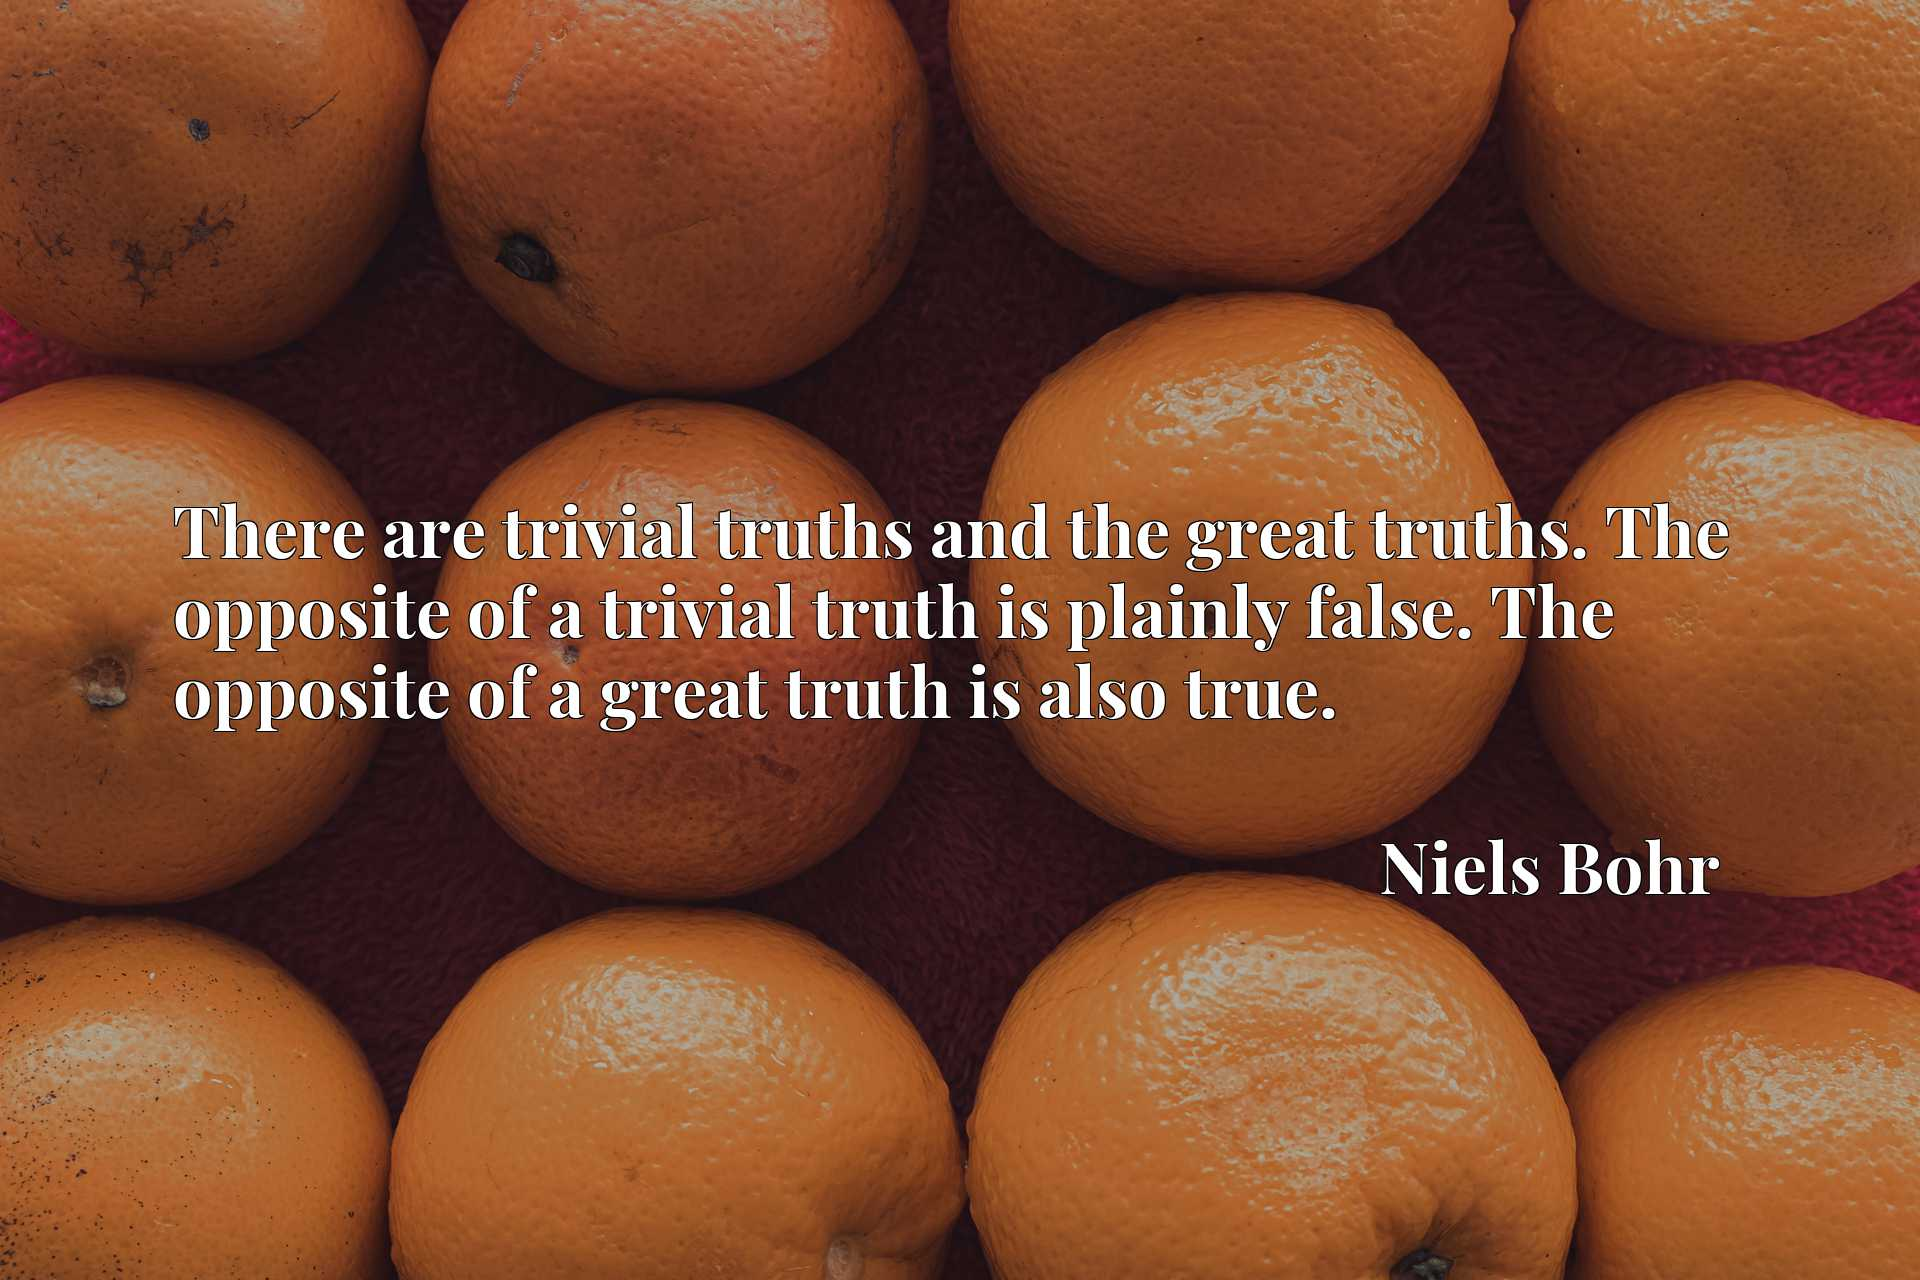 There are trivial truths and the great truths. The opposite of a trivial truth is plainly false. The opposite of a great truth is also true.